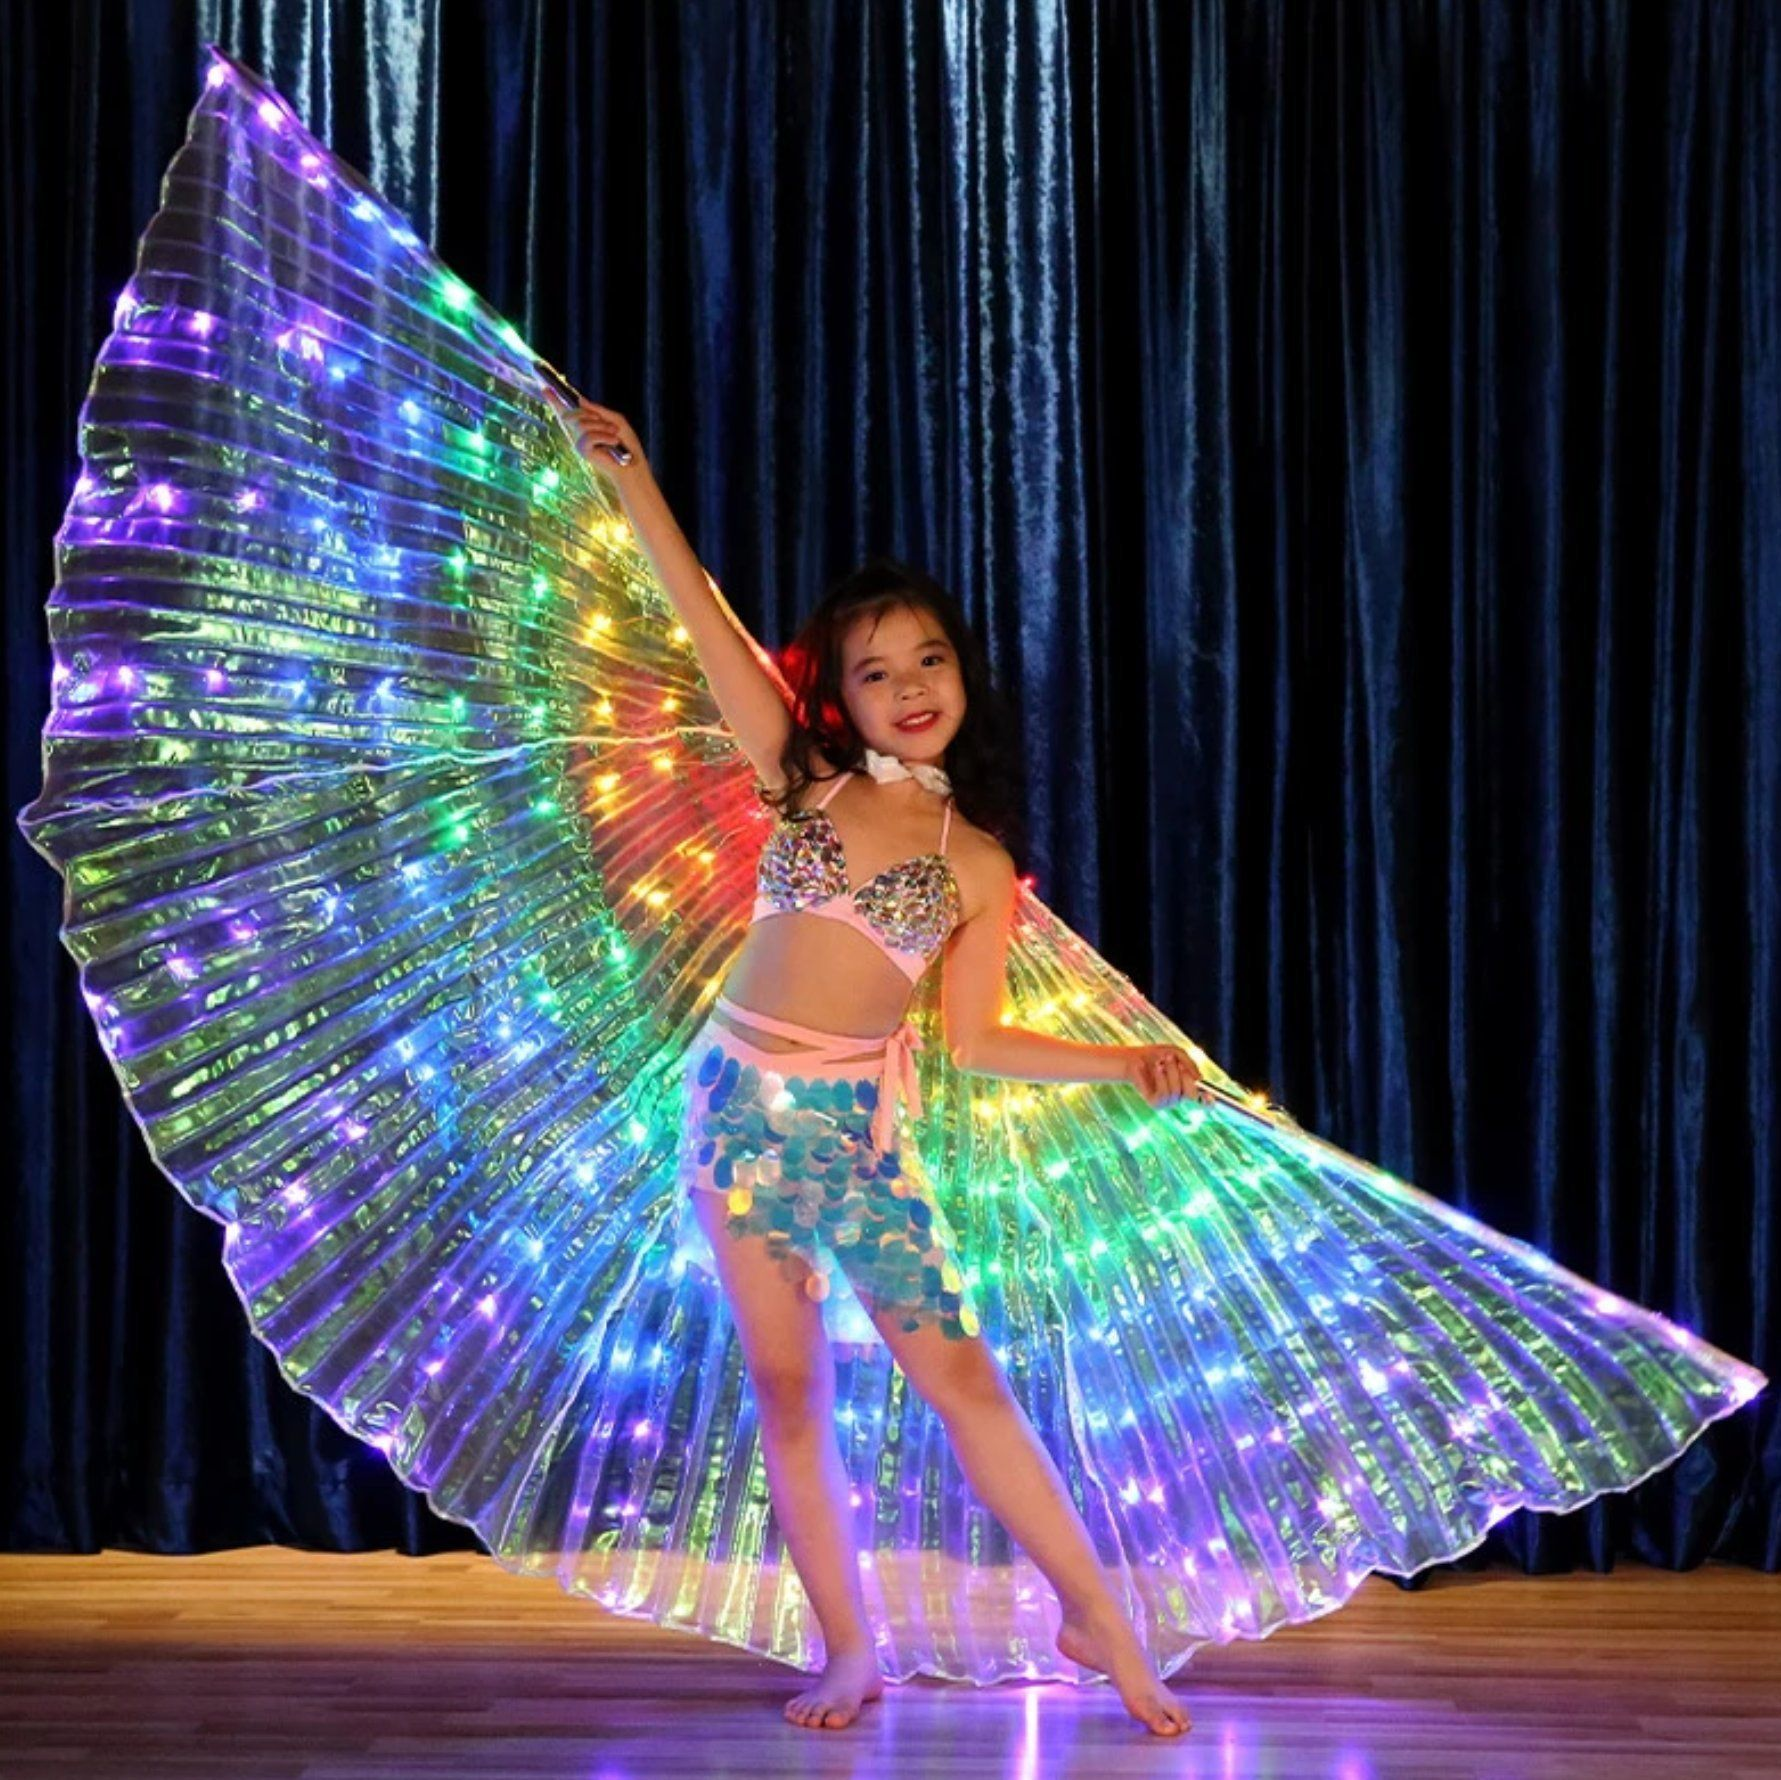 Rainbow wings led butterfly costume in 2020 Butterfly